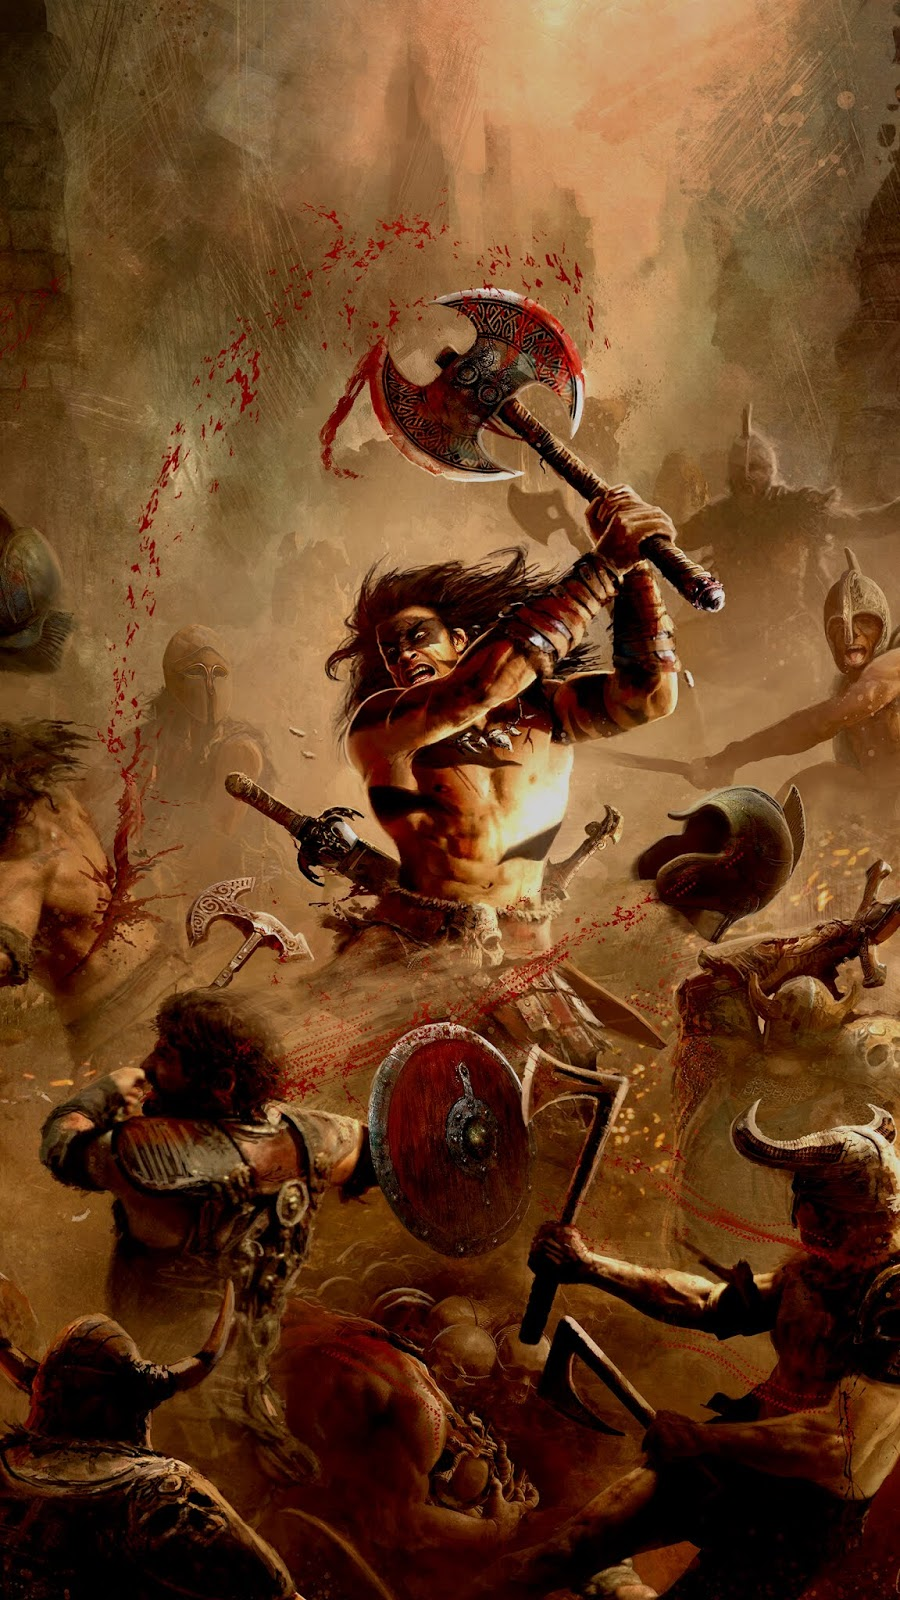 art illustration of conan fighting. Really cool to use as phone wallpaper. It is in 1080 x 1920 pixels resolution.